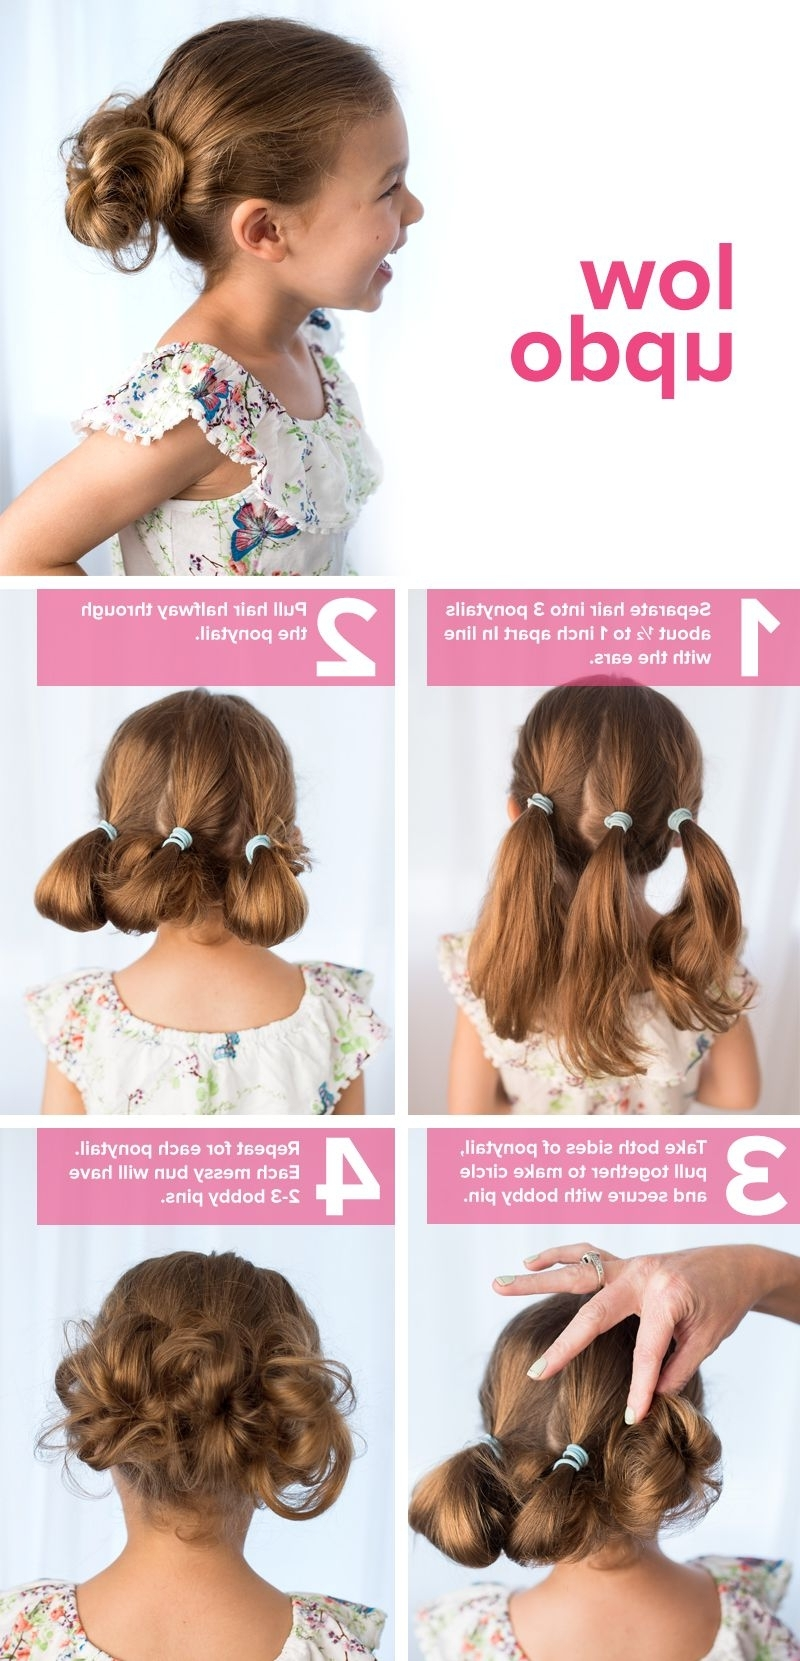 Well Known Classy Pinned Pony Hairstyles Inside 5 Fast, Easy, Cute Hairstyles For Girls (Gallery 7 of 20)